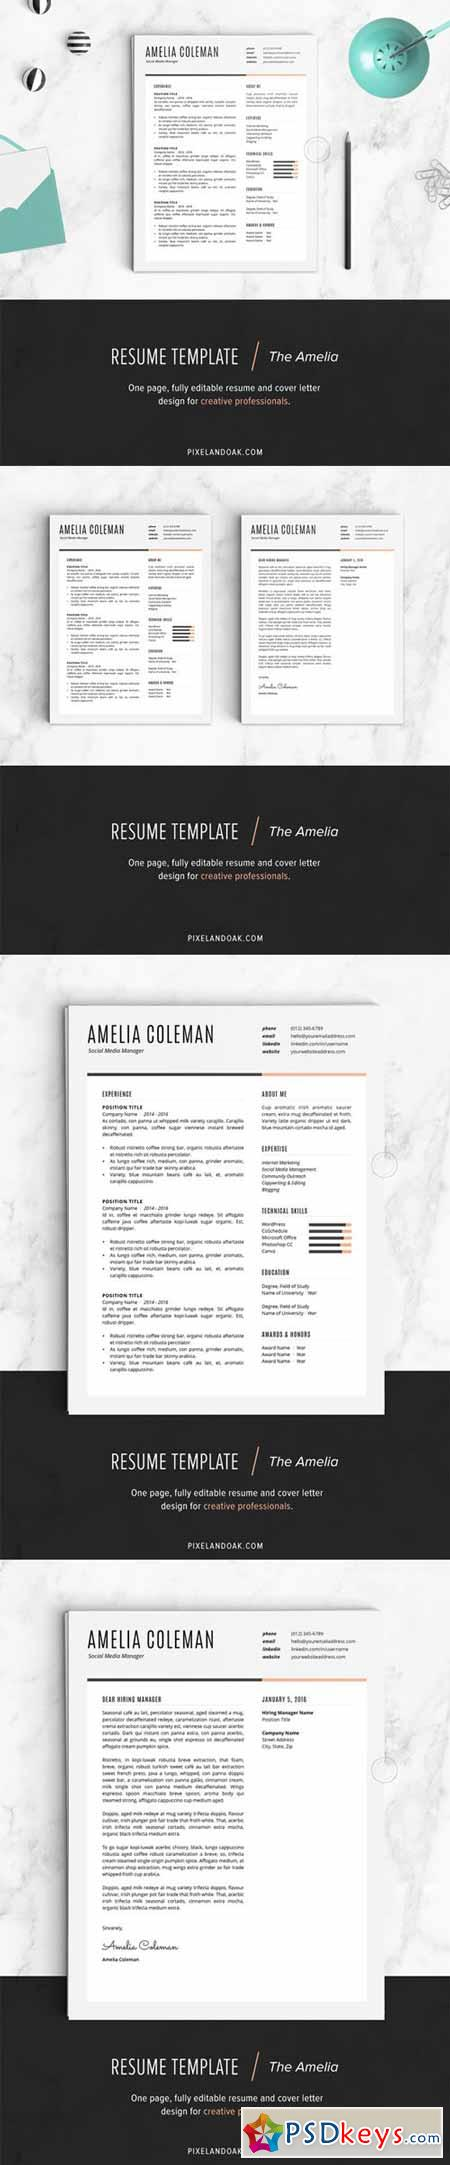 Resume Template The Amelia   Free Download Photoshop Vector